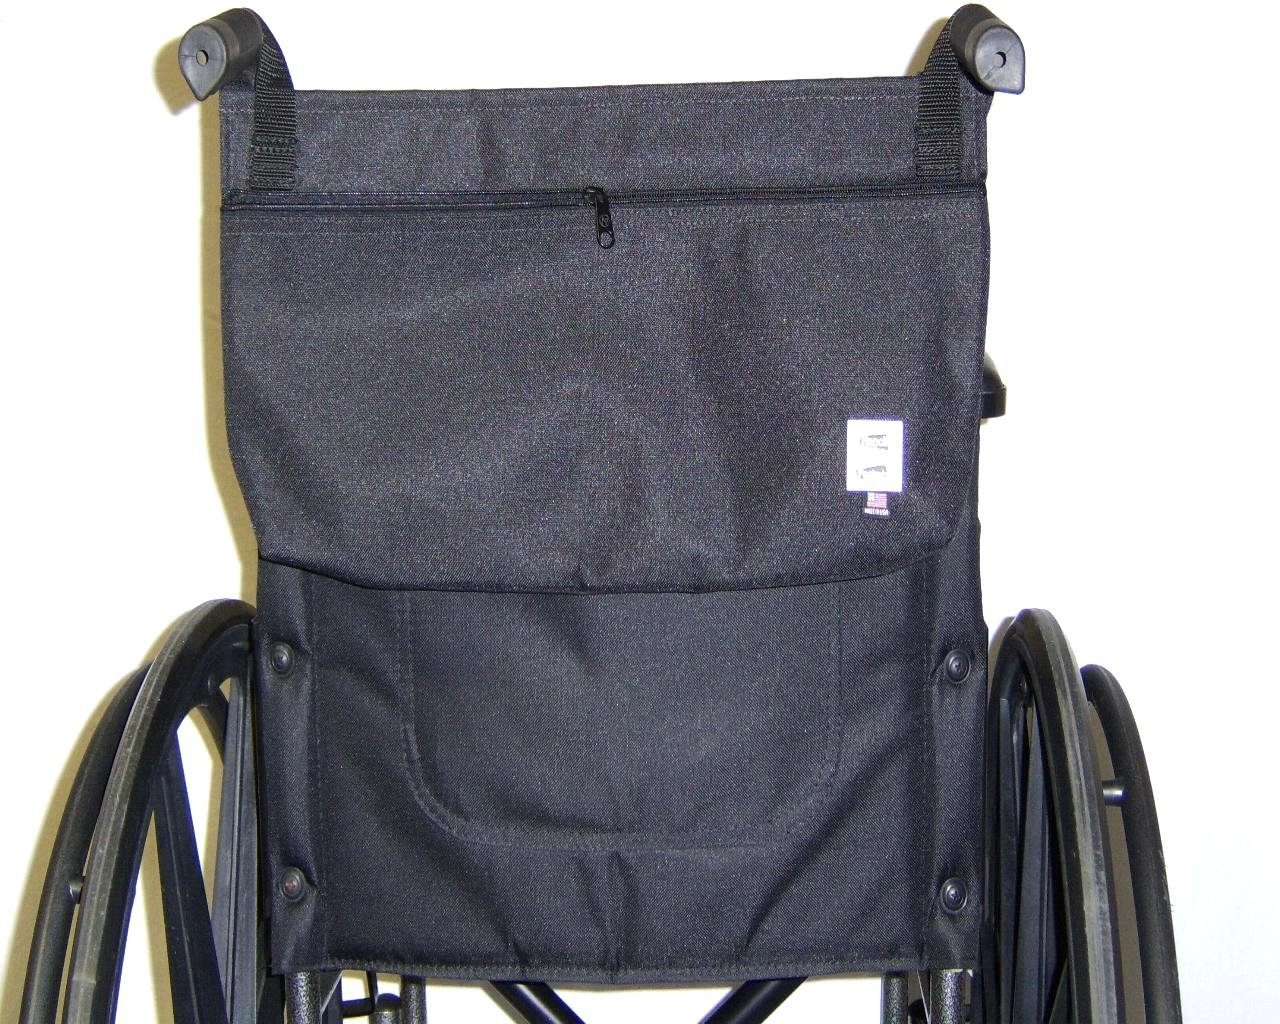 Handi Pockets 3b6bk Storage Accessory Wheelchair, Cordura, Black with Zipper